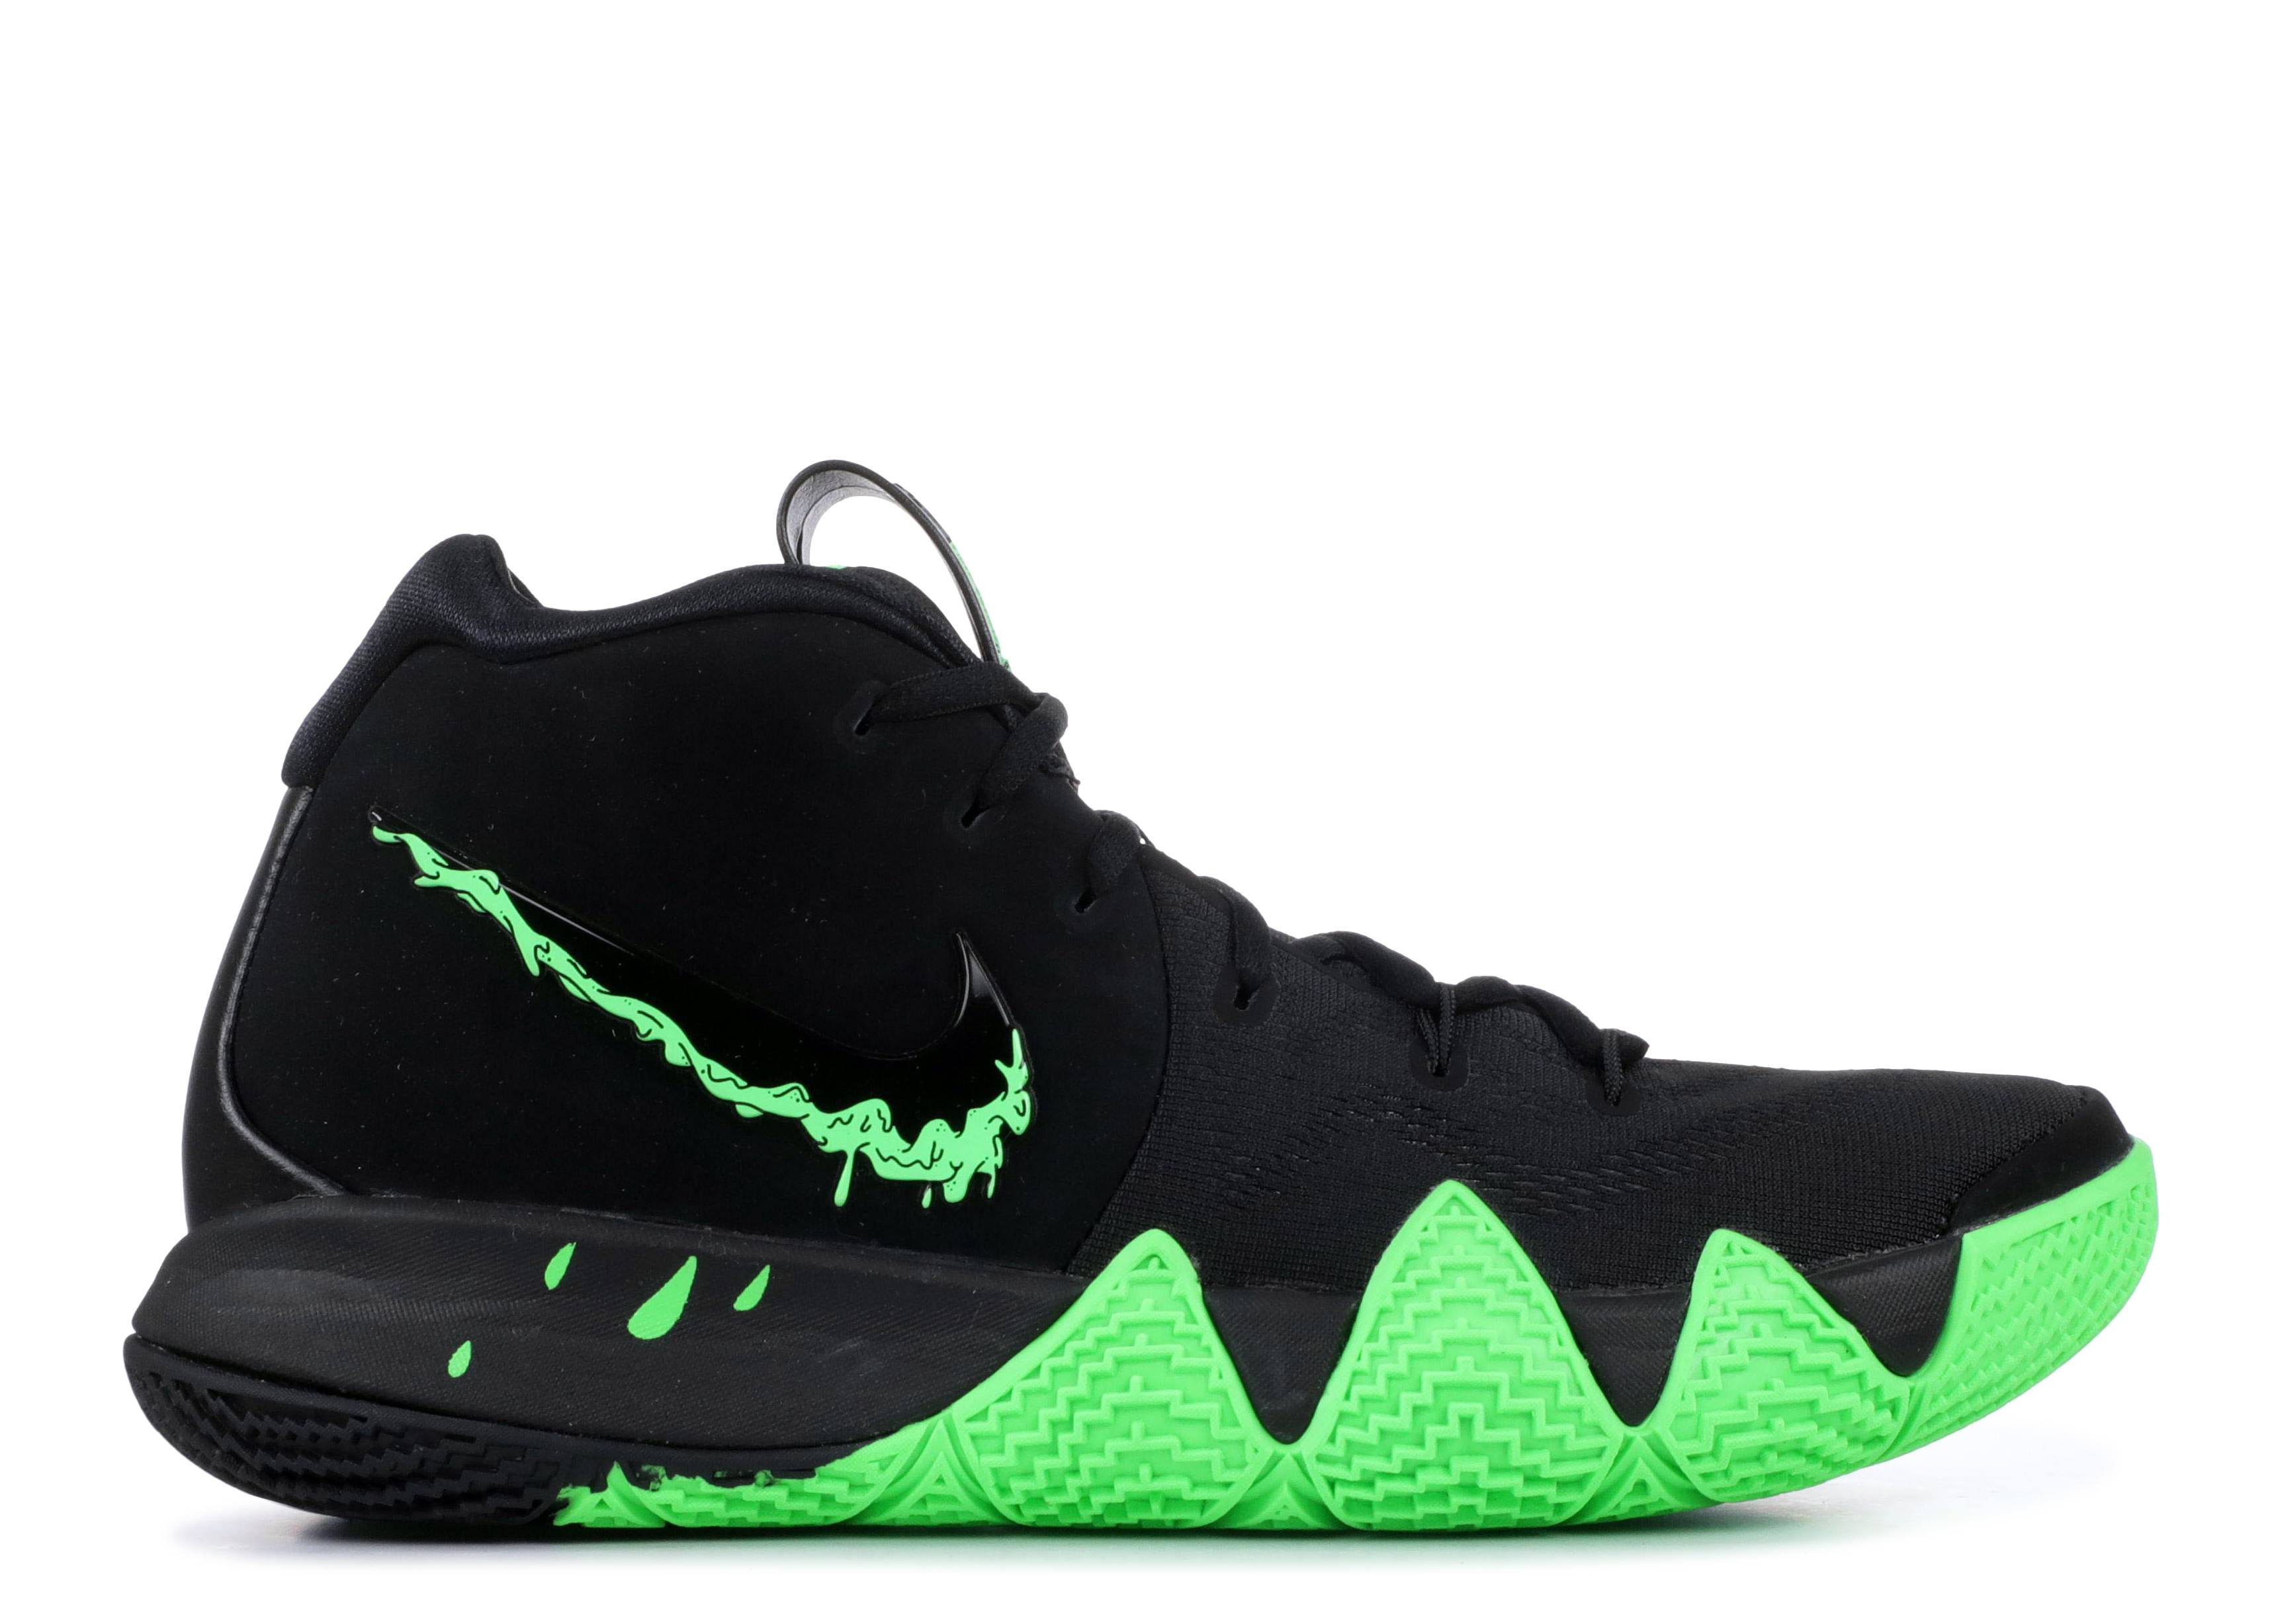 half off 0f0aa 594b6 Kyrie Irving - Nike Basketball - Nike | Flight Club